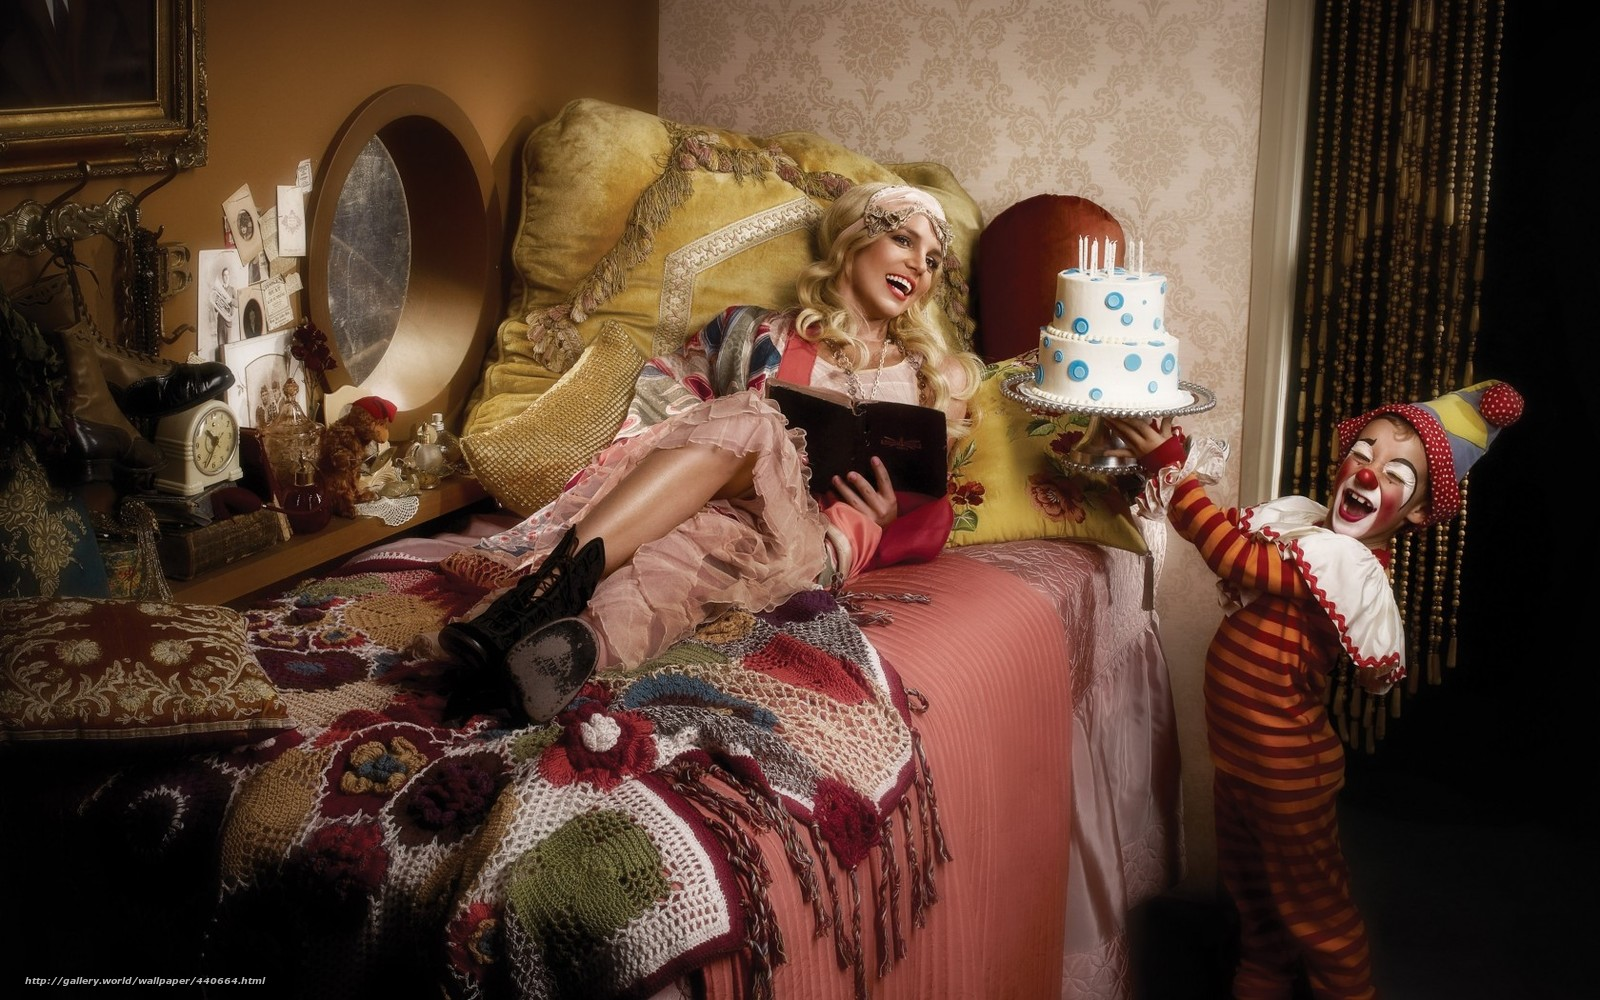 singer, Britney Spears, girl, cake, clown, bed, music